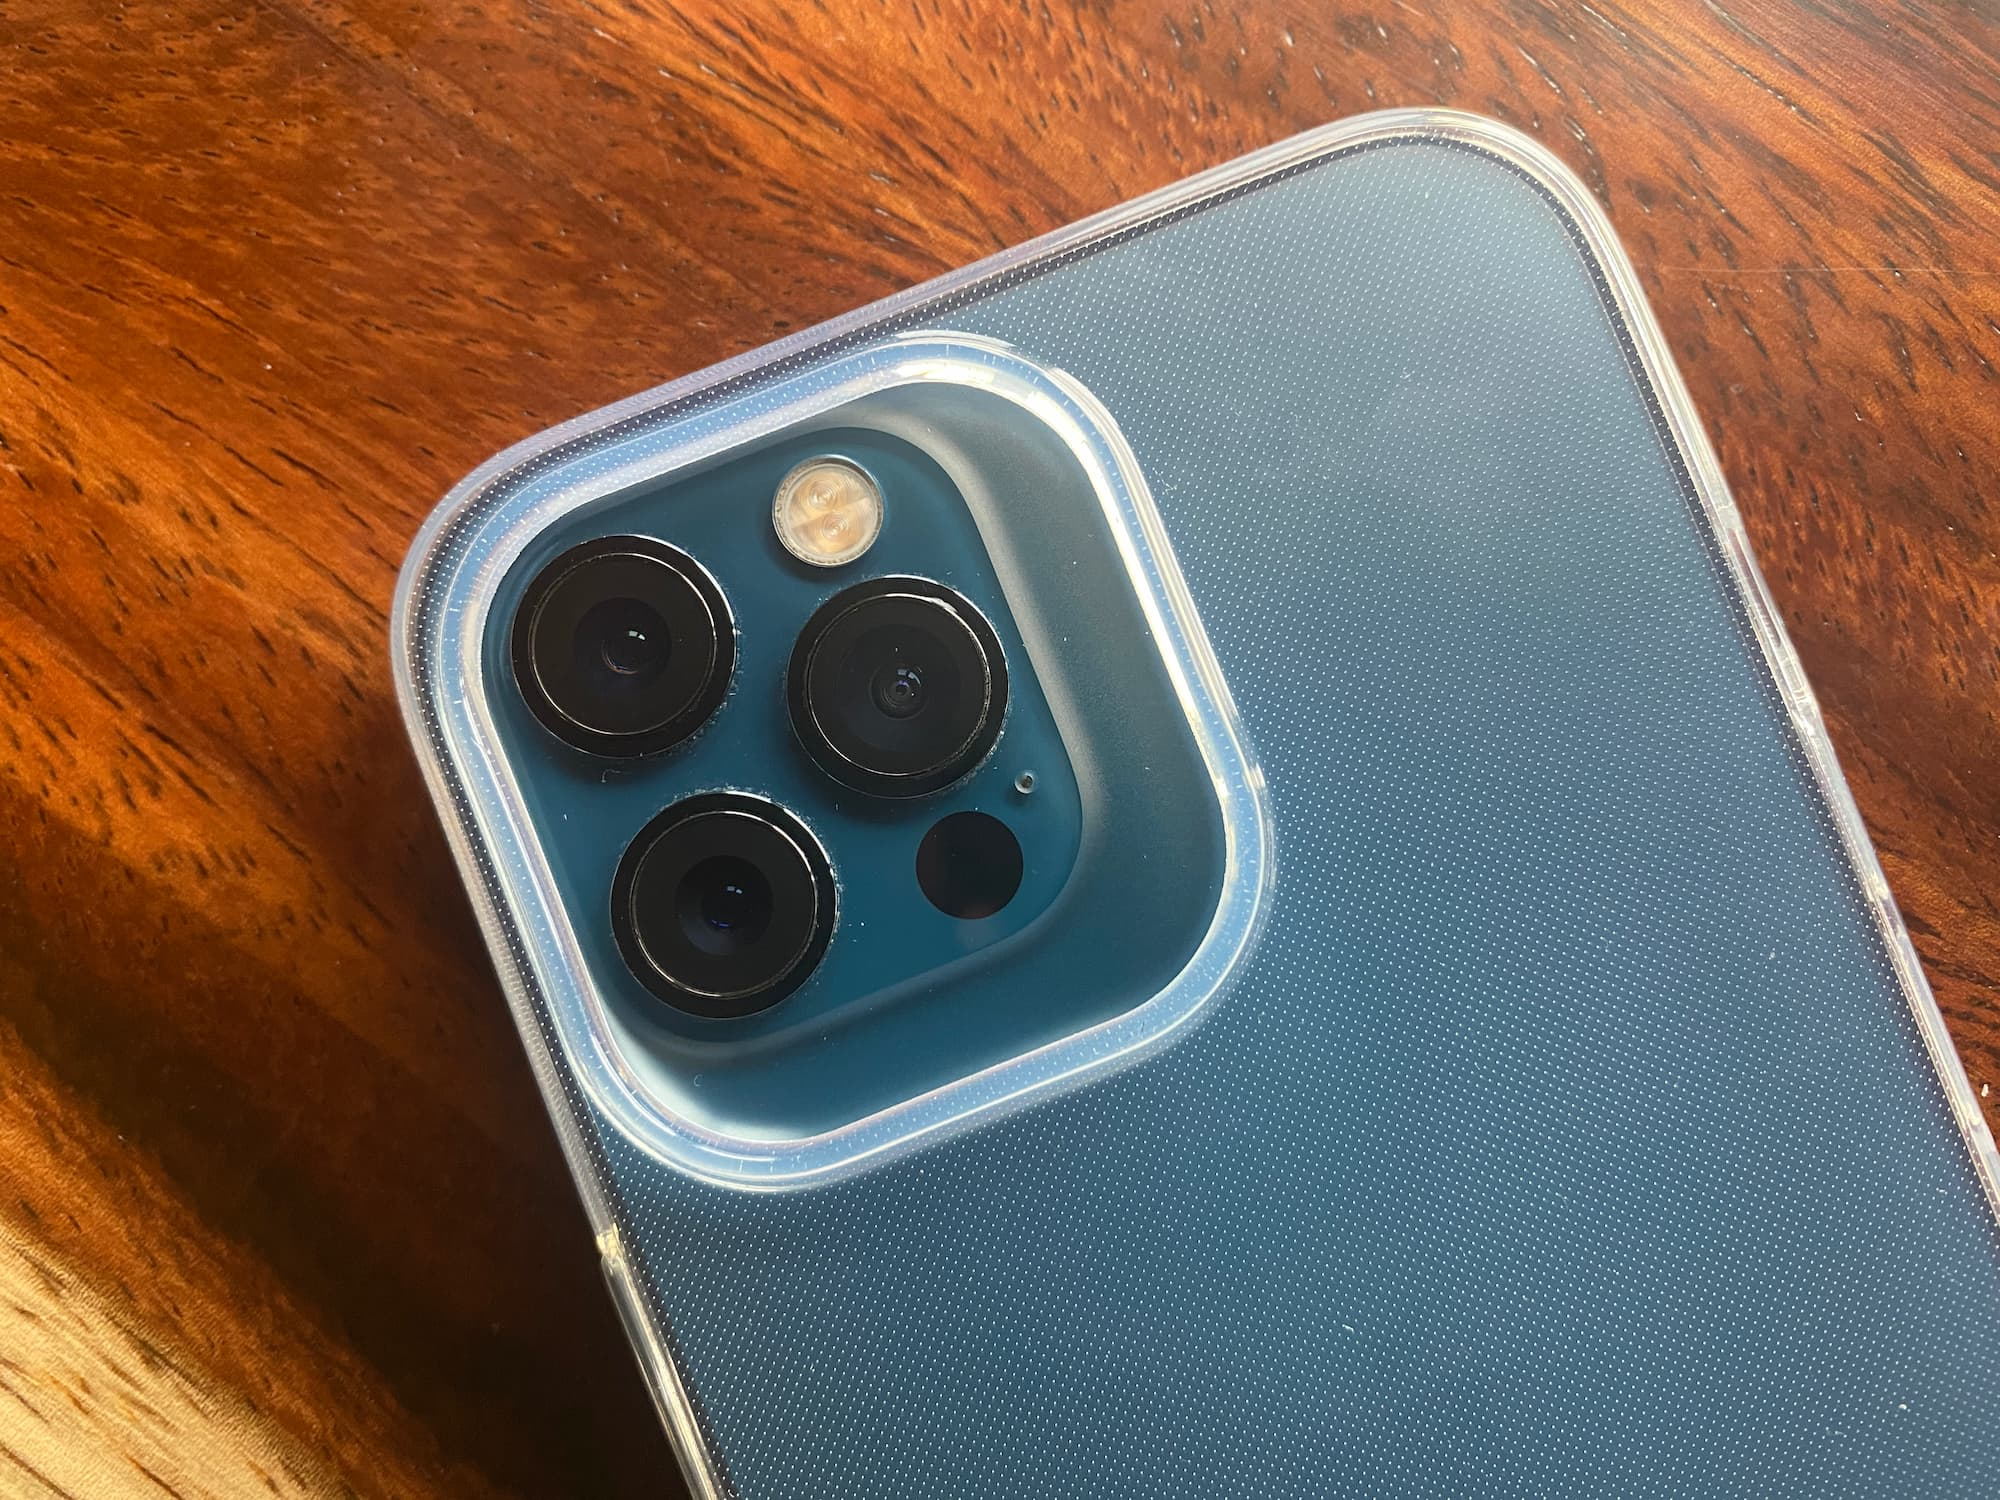 An image showing a massive rear camera bump cutout on a minimalist iPhone 13 case from Totallee